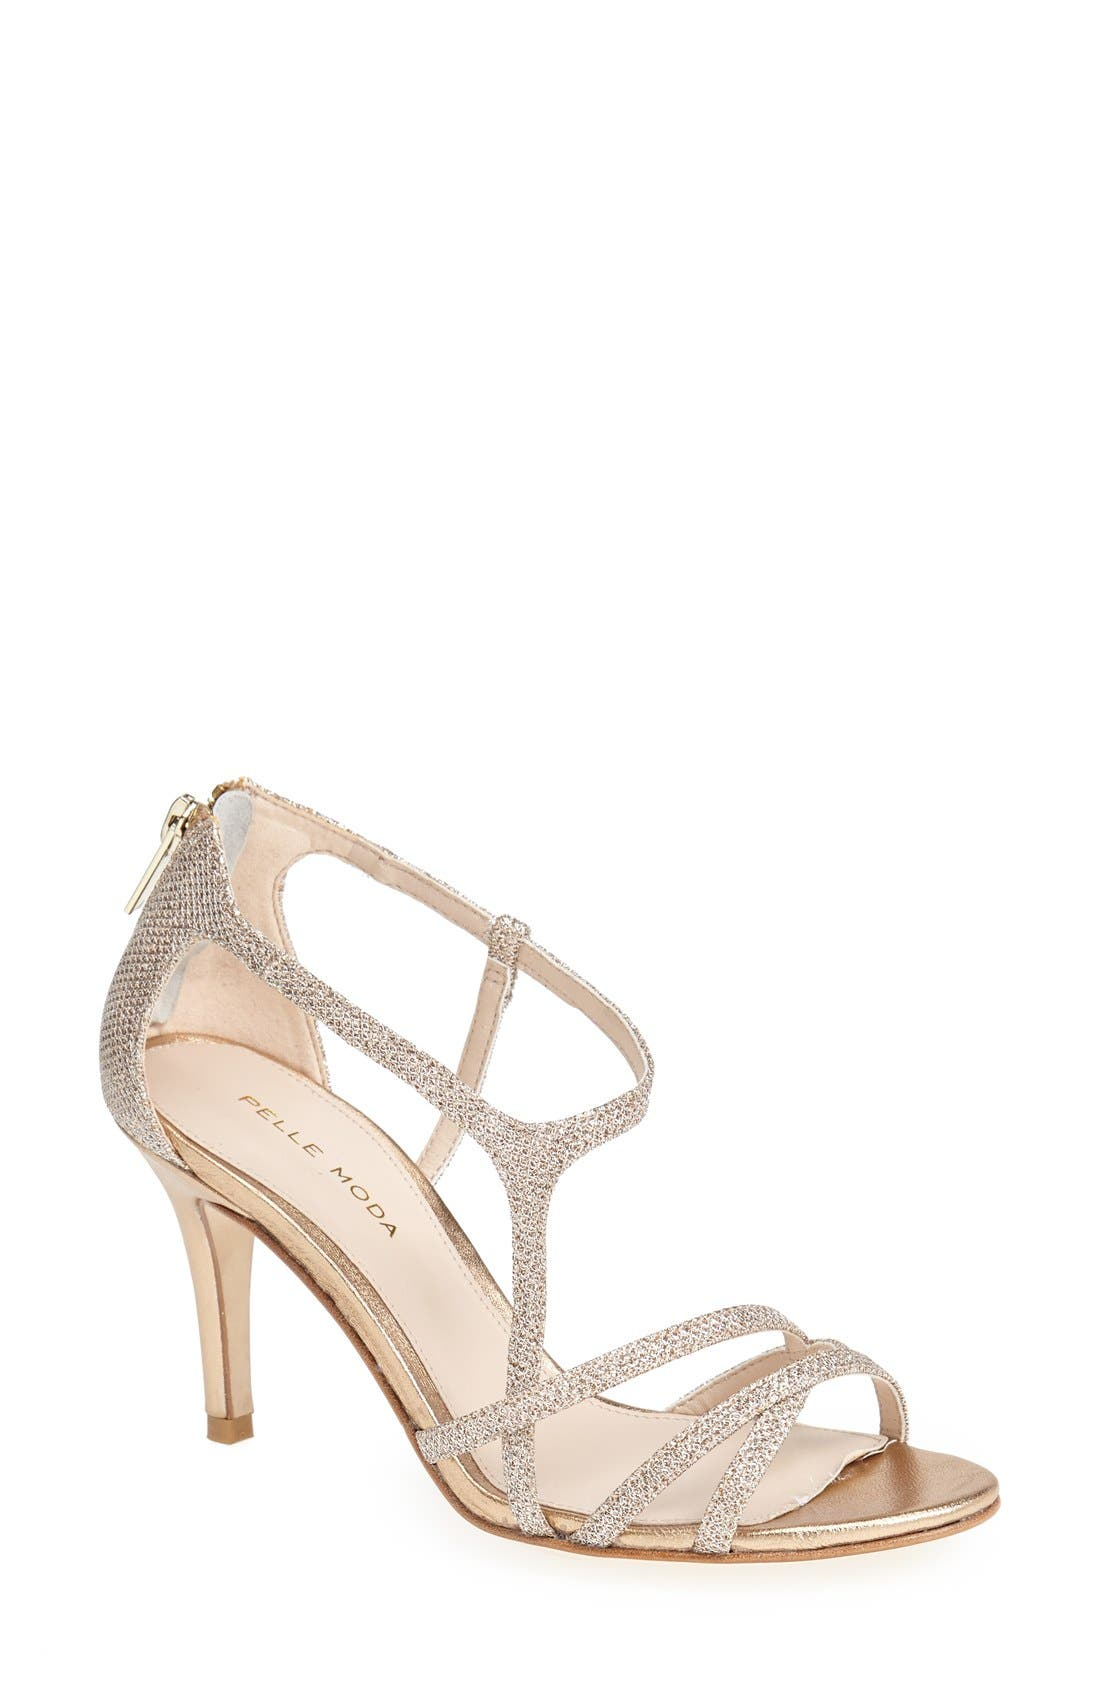 'Ruby' Strappy Sandal,                             Main thumbnail 1, color,                             710